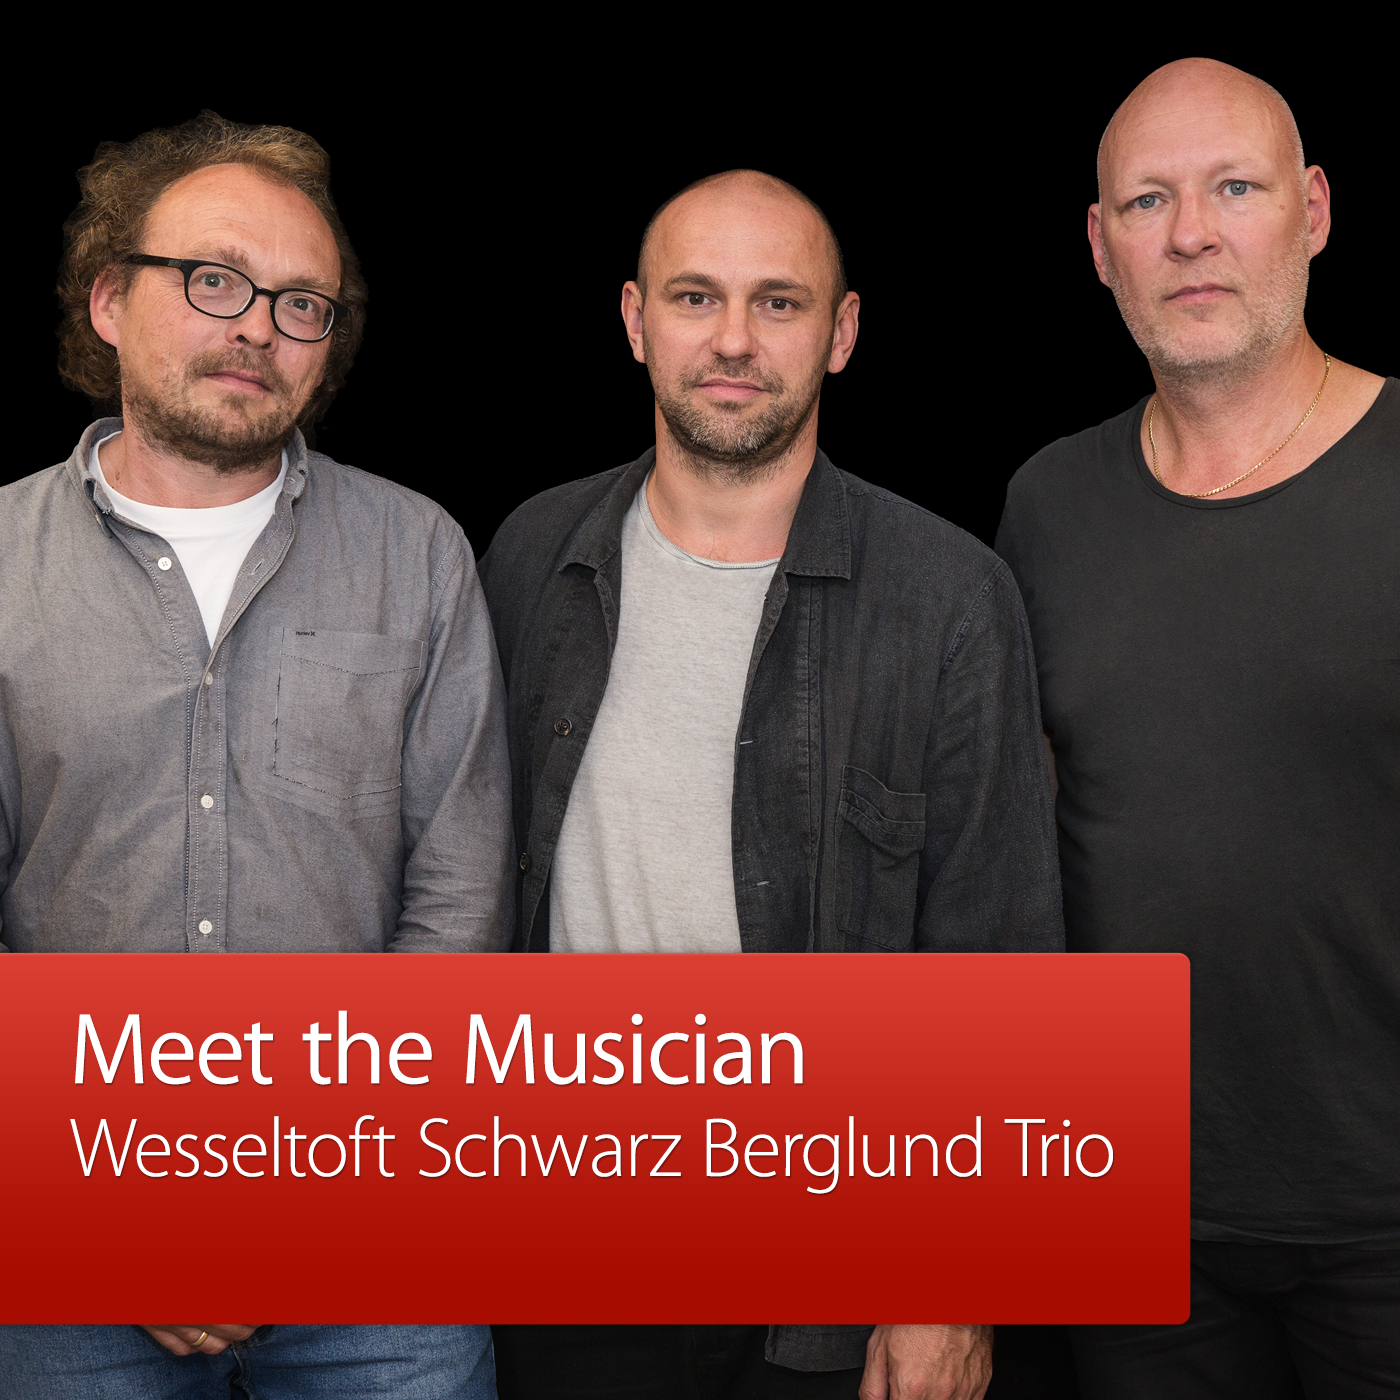 Wesseltoft Schwarz Berglund Trio: Meet the Musician